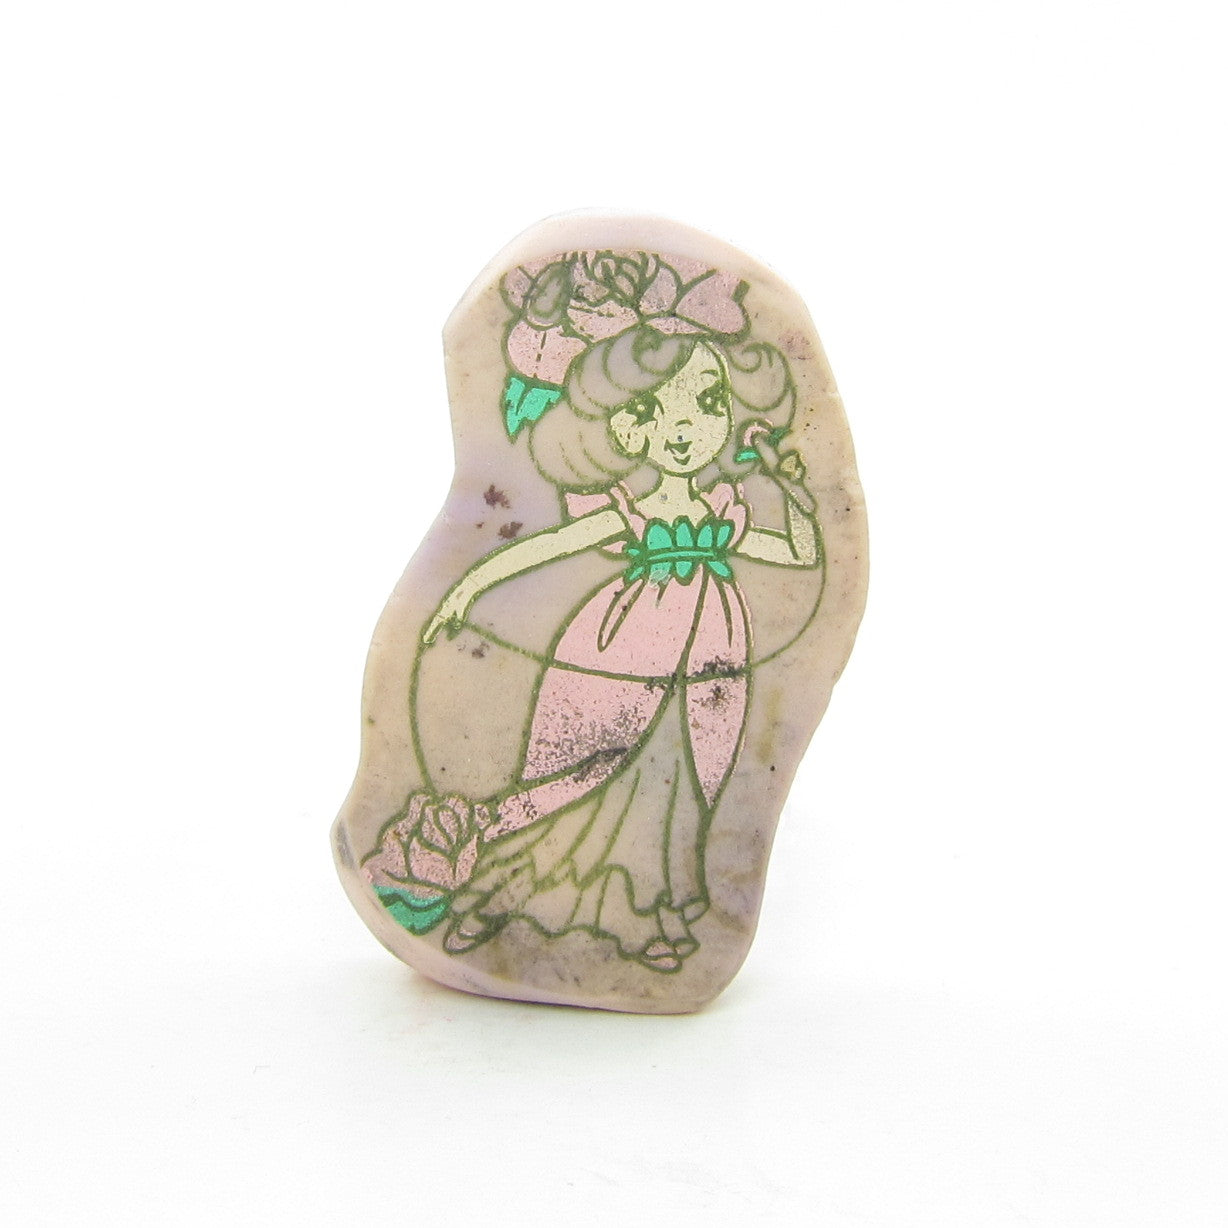 Rose Petal Place eraser